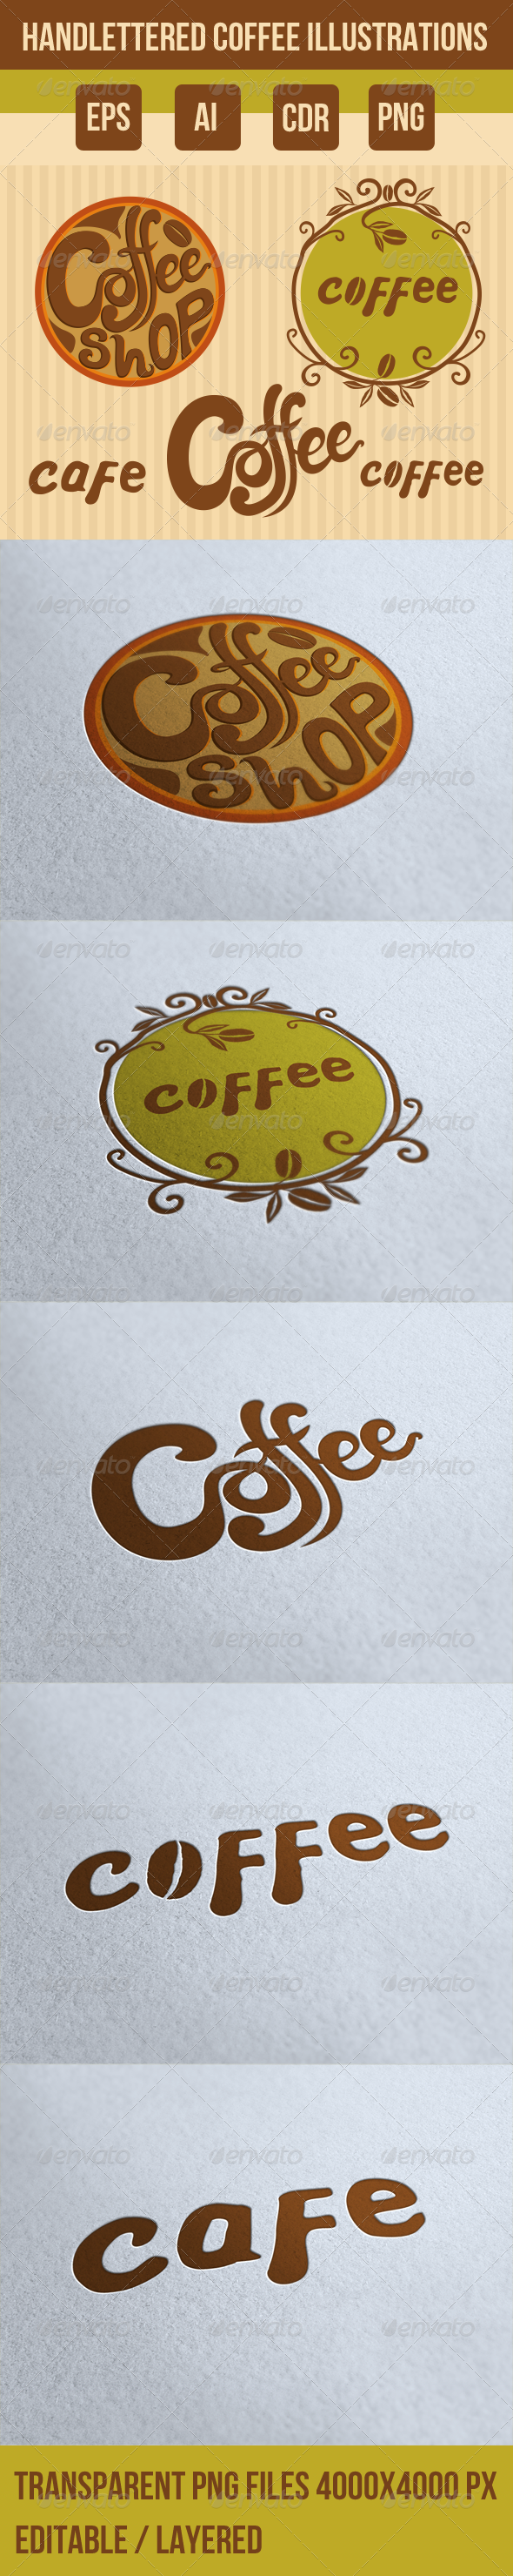 GraphicRiver 5 Handlettered Coffee Illustrations 8020447